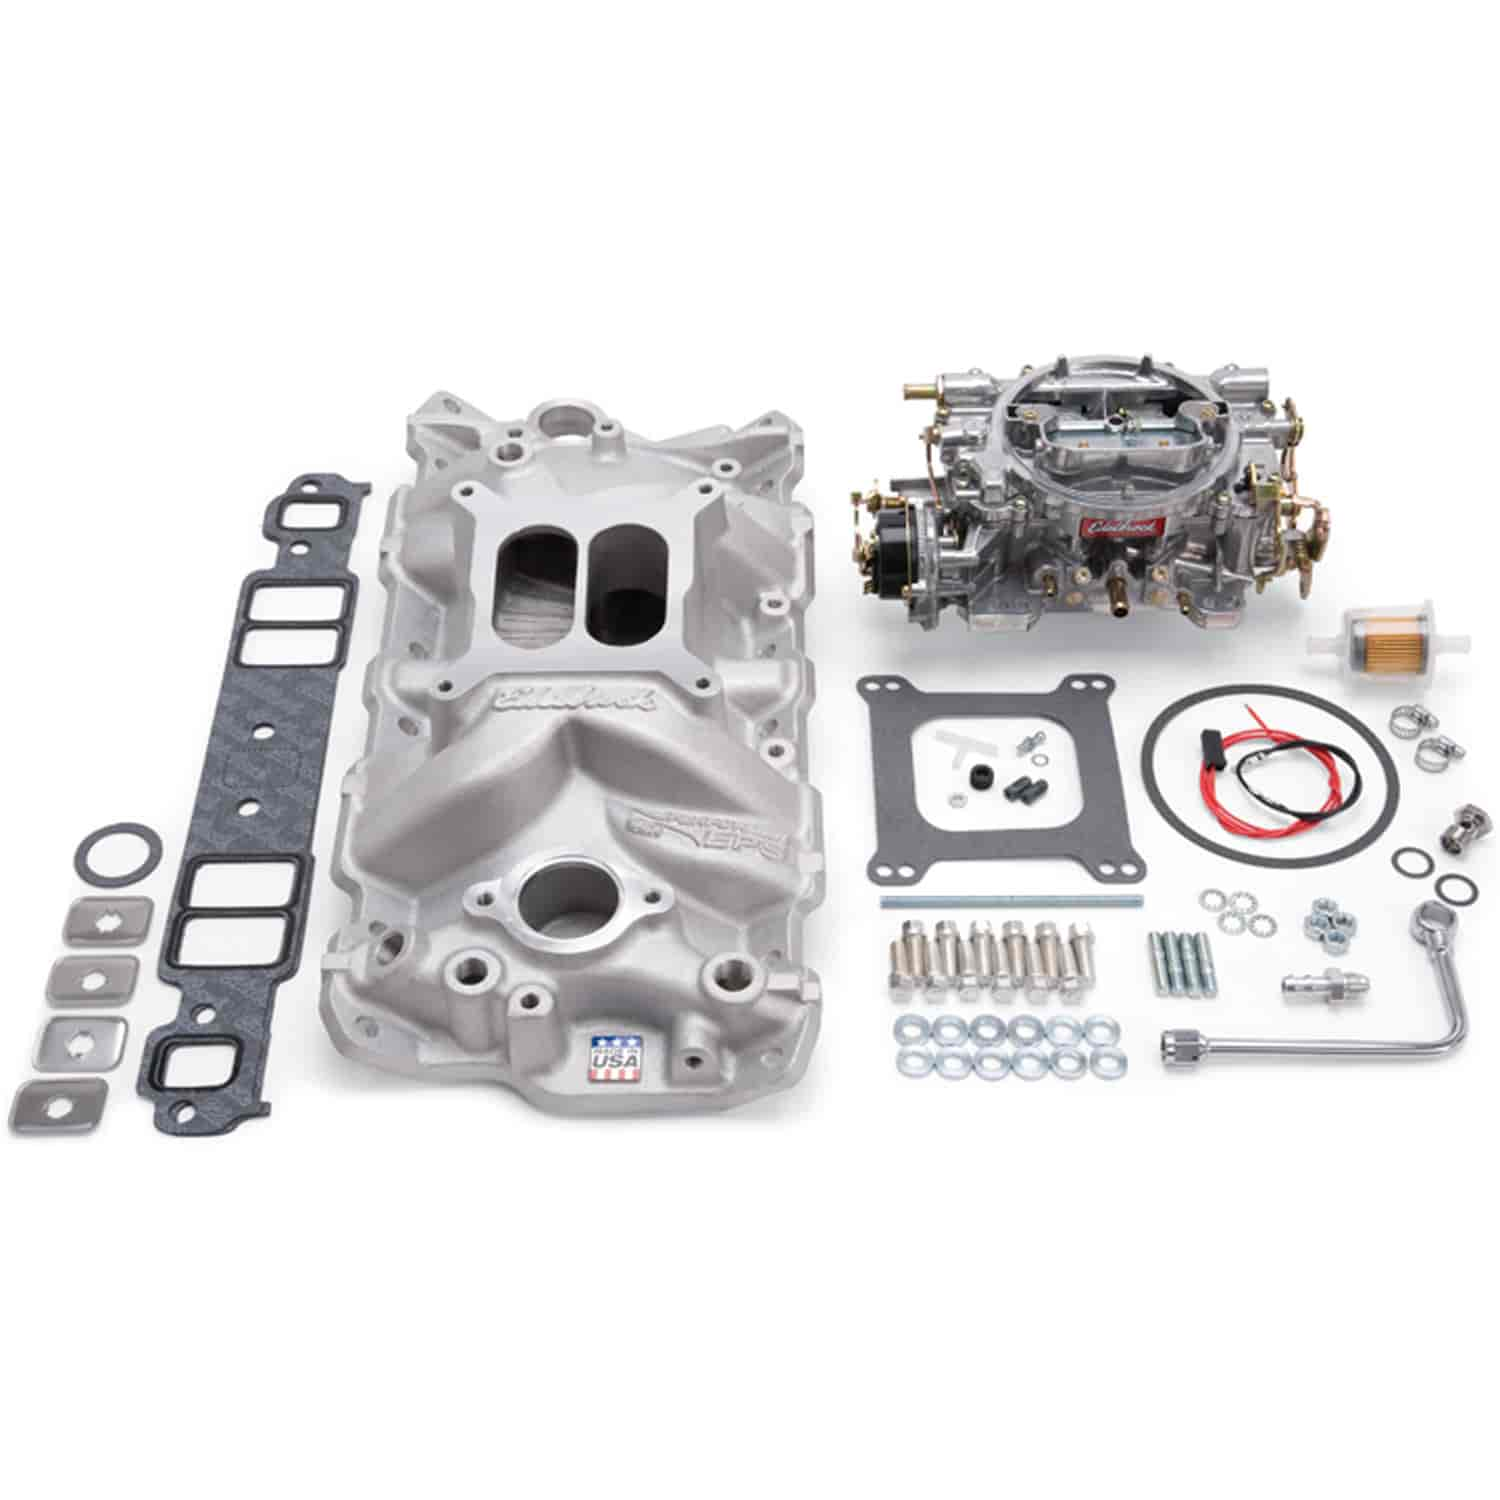 Edelbrock 2021 - Edelbrock Single-Quad Intake Manifold and Carb Kits